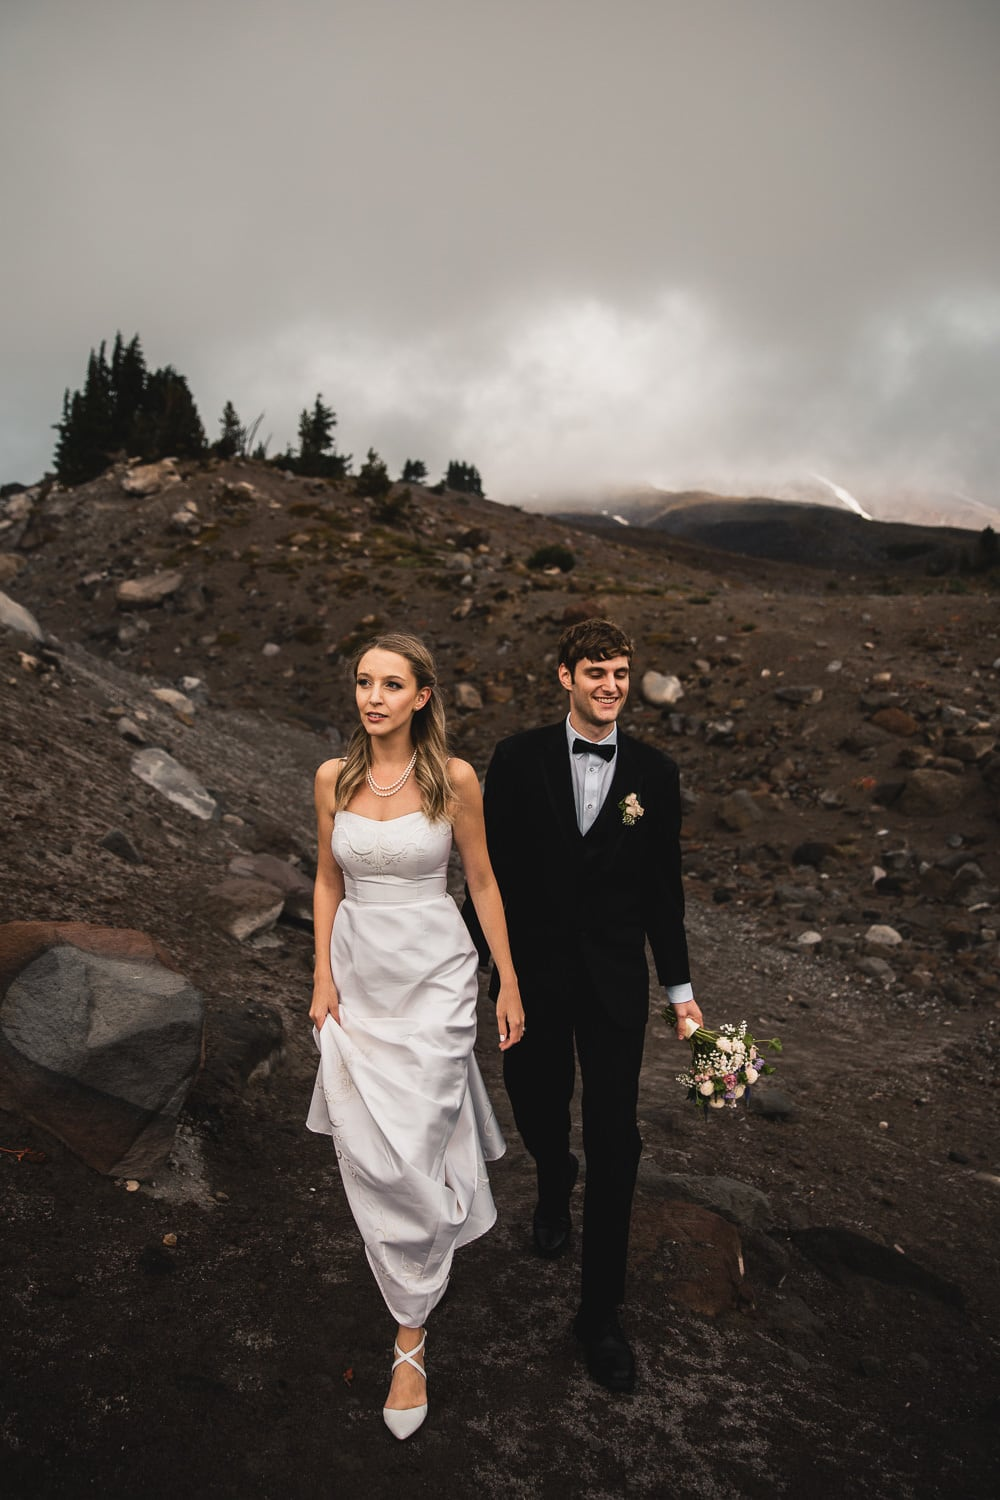 couple walking through a volcanic forest in the moody skies glad they decided on the best places to elope